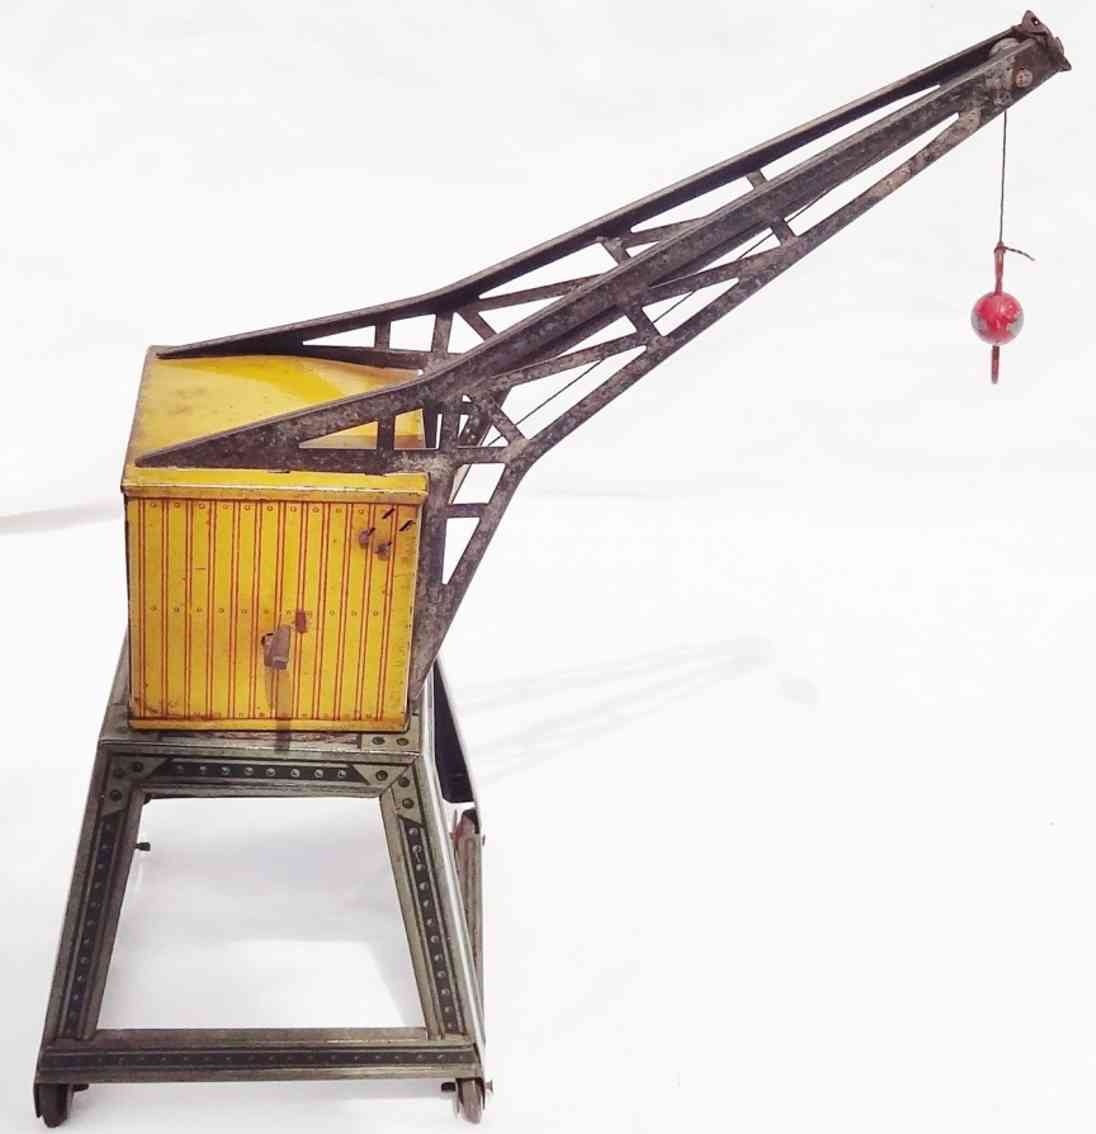 fischer heinrich railway toy mobile crane with house and ball hook